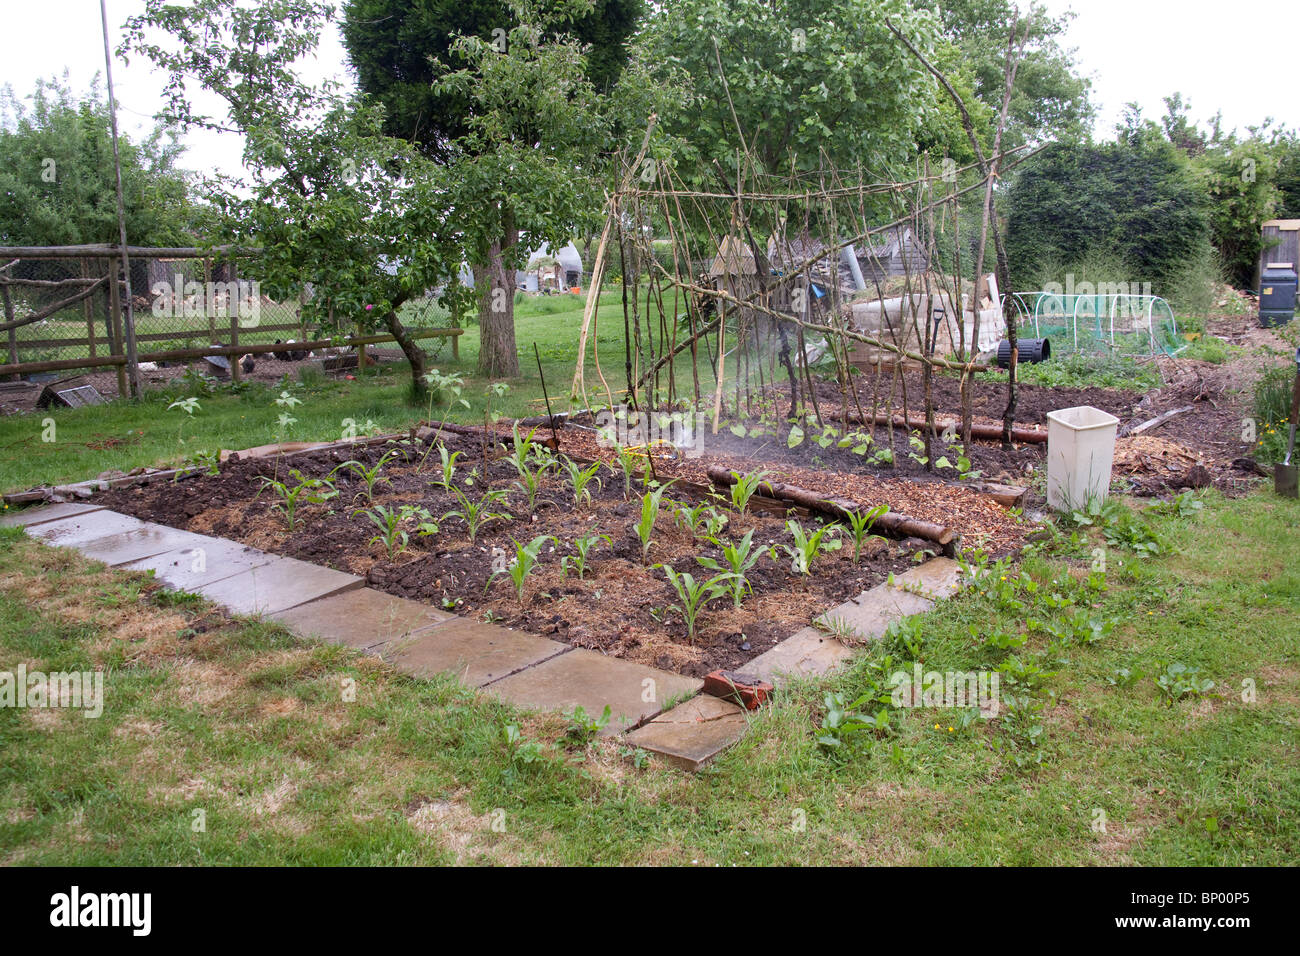 Traditional vegetable or kitchen garden, Hampshire, England. - Stock Image